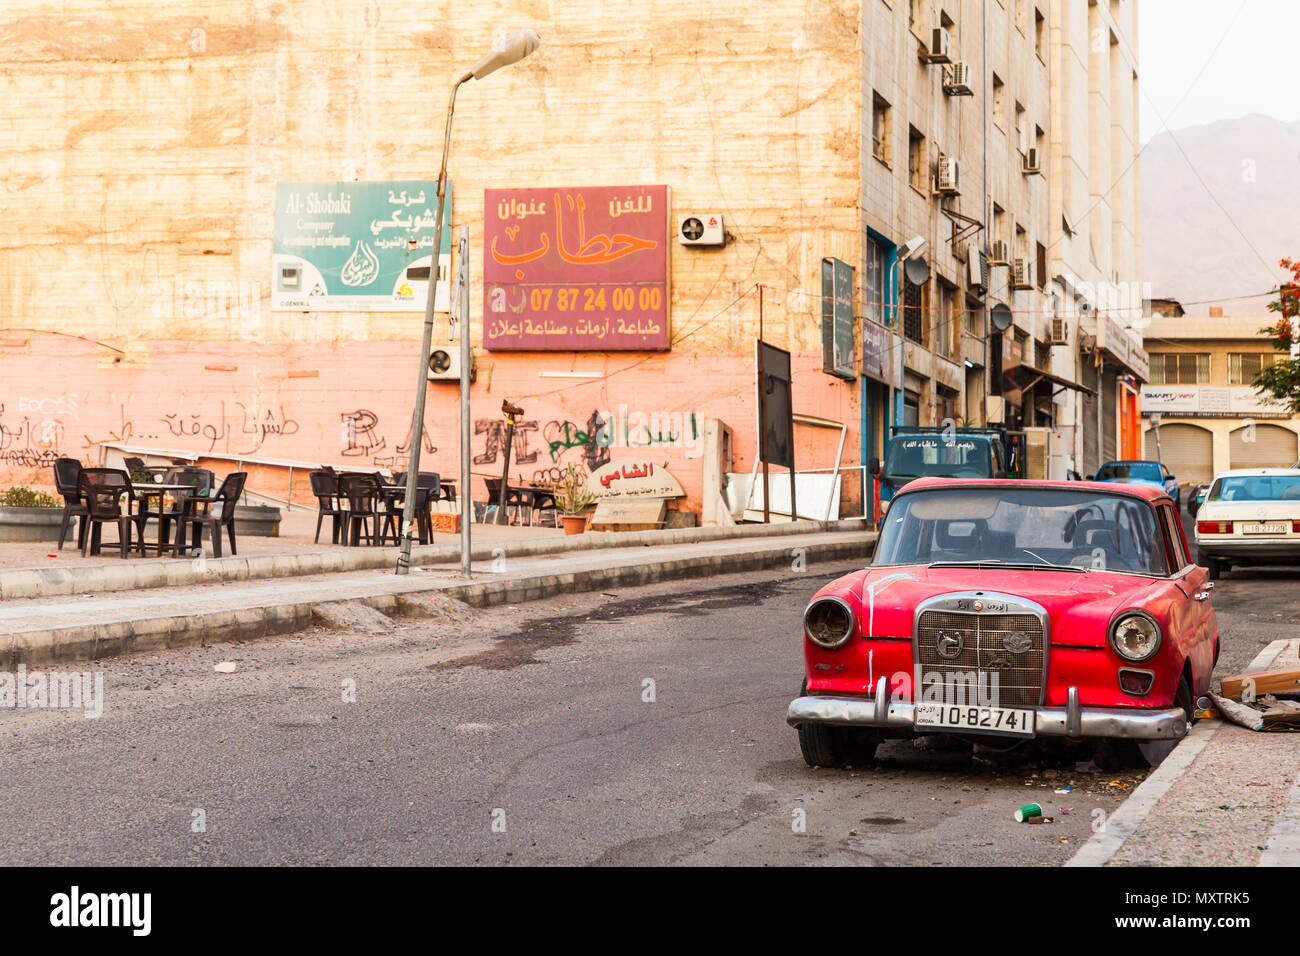 Aqaba, Jordan - May 18, 2018: Red abandoned Mercedes-Benz W110 190, midsize automobile stands on dirty roadside in Aqaba city - Stock Image